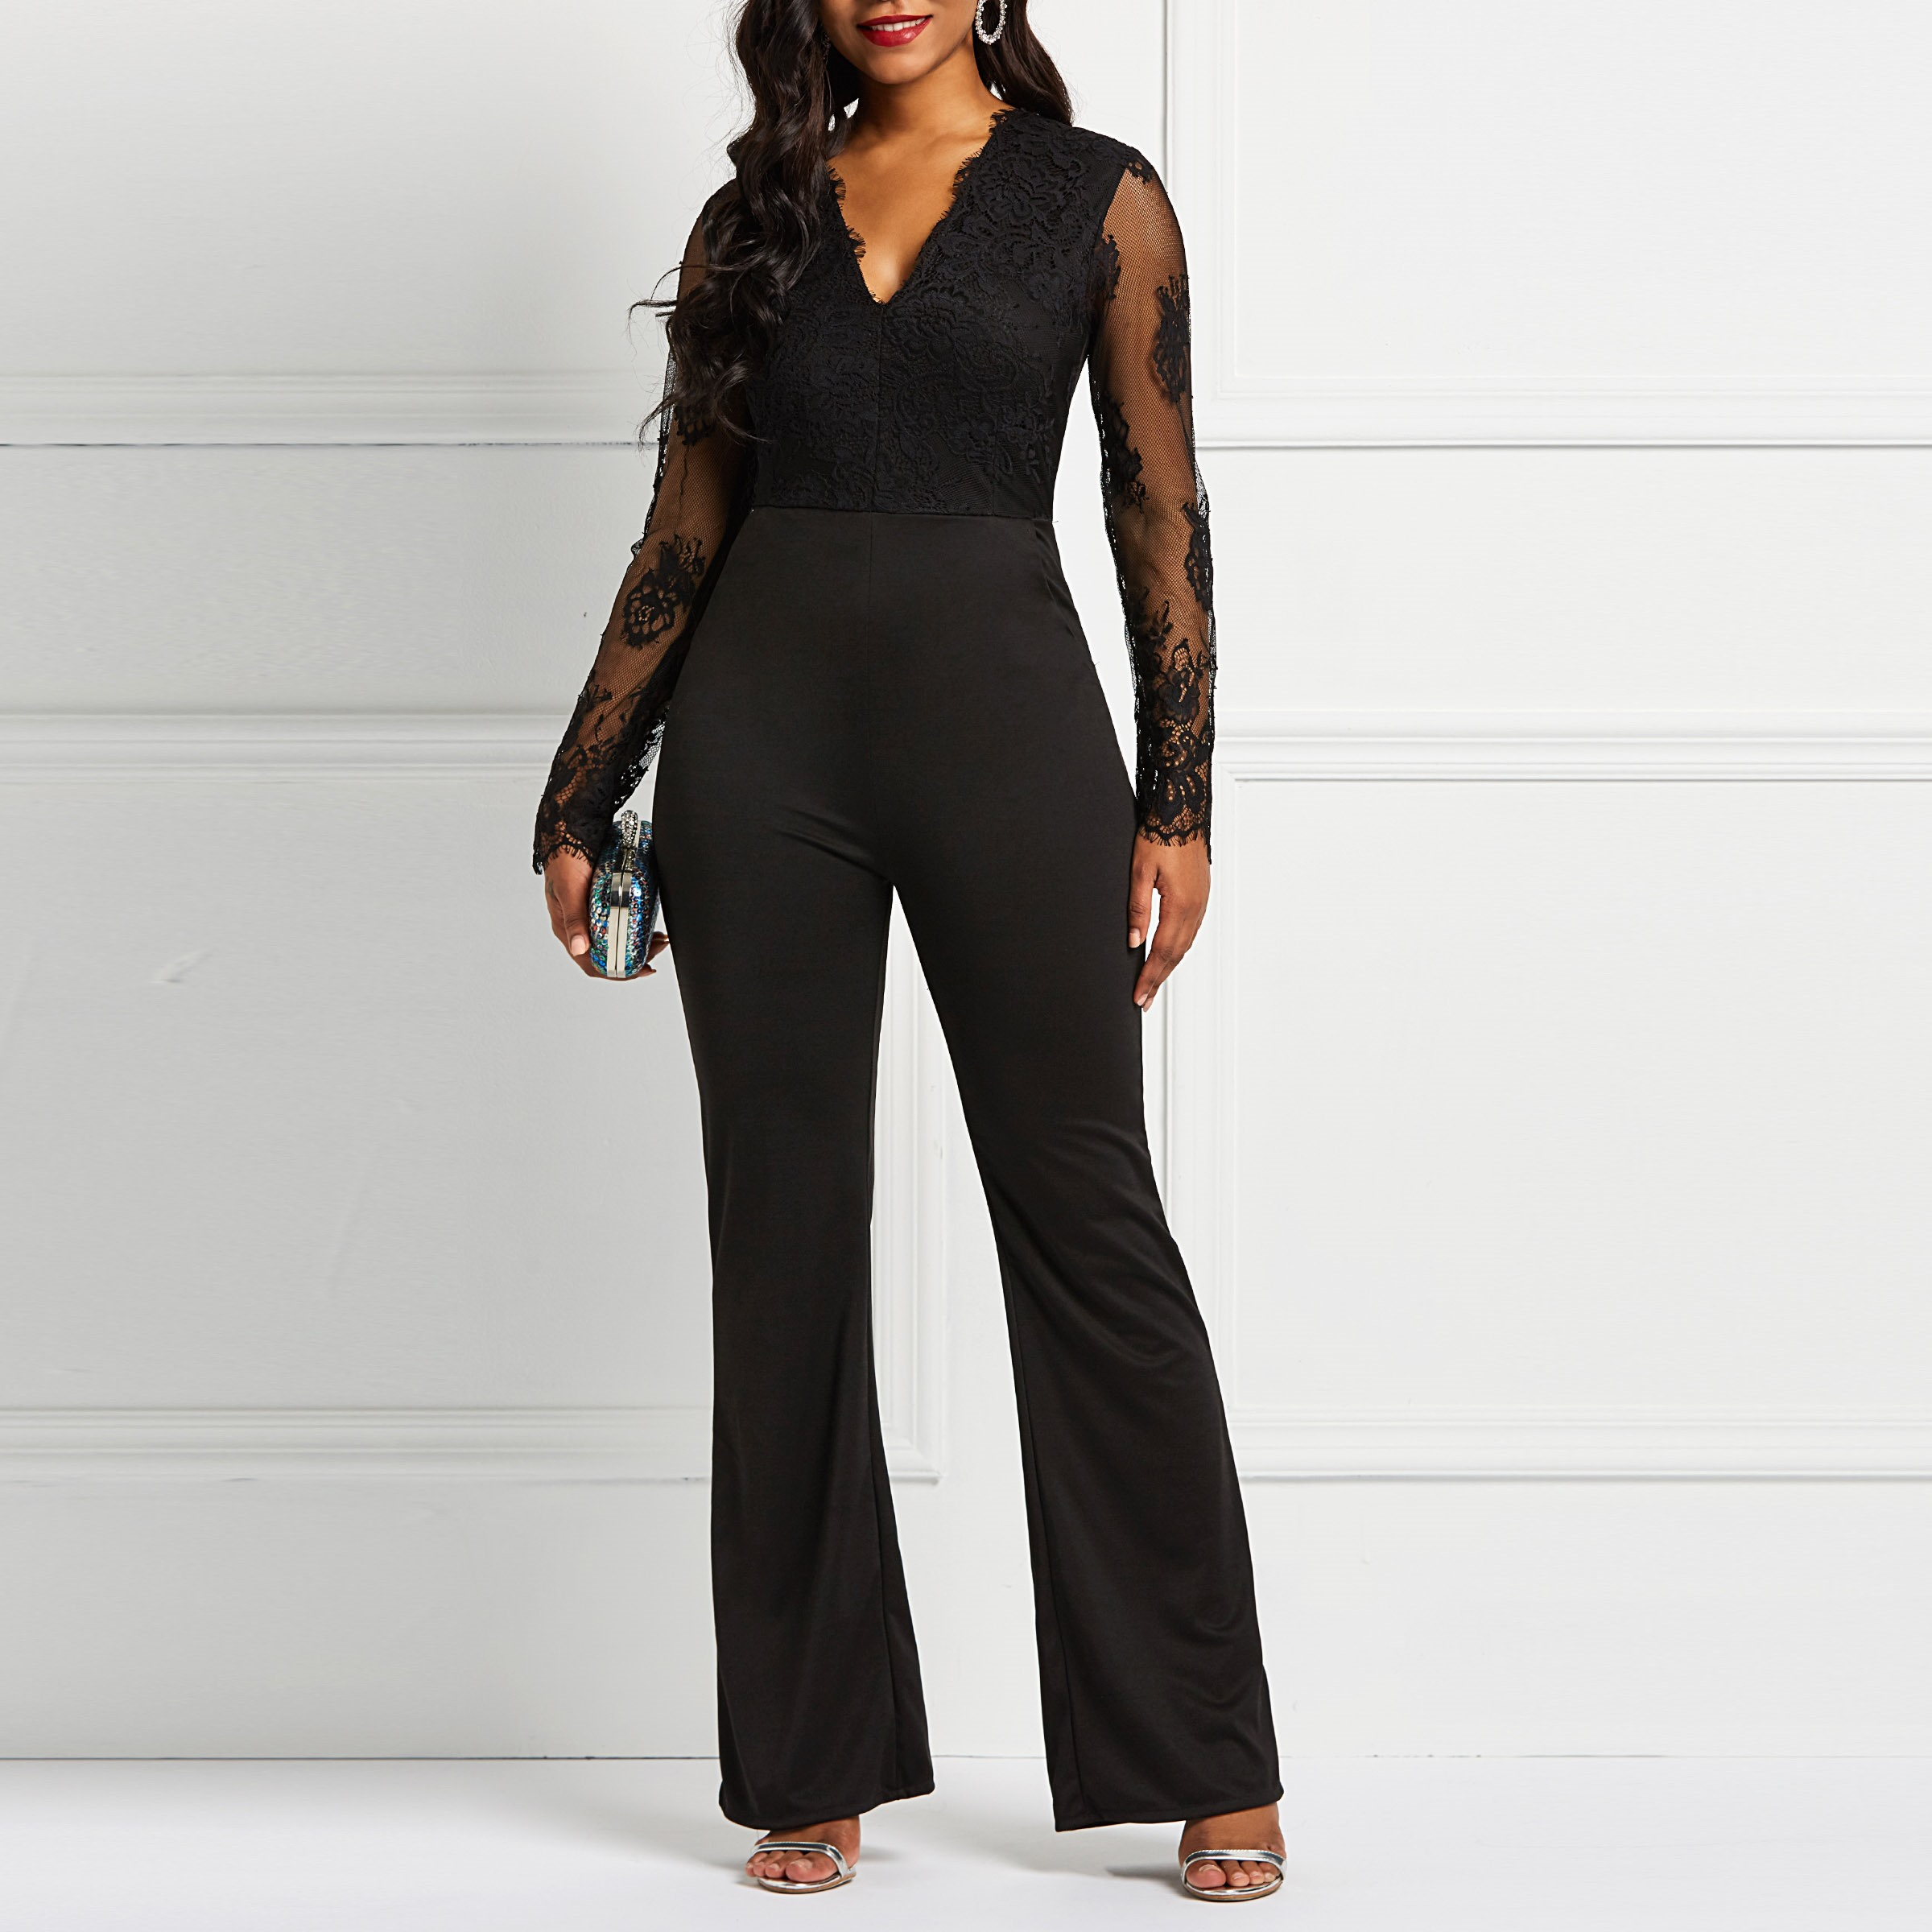 Clocolor Elegant Ladies Long Sleeve   Jumpsuit   Sexy V Neck Lace Transparent Autumn Winter Plus Size Bodycon Slim Women's   Jumpsuits